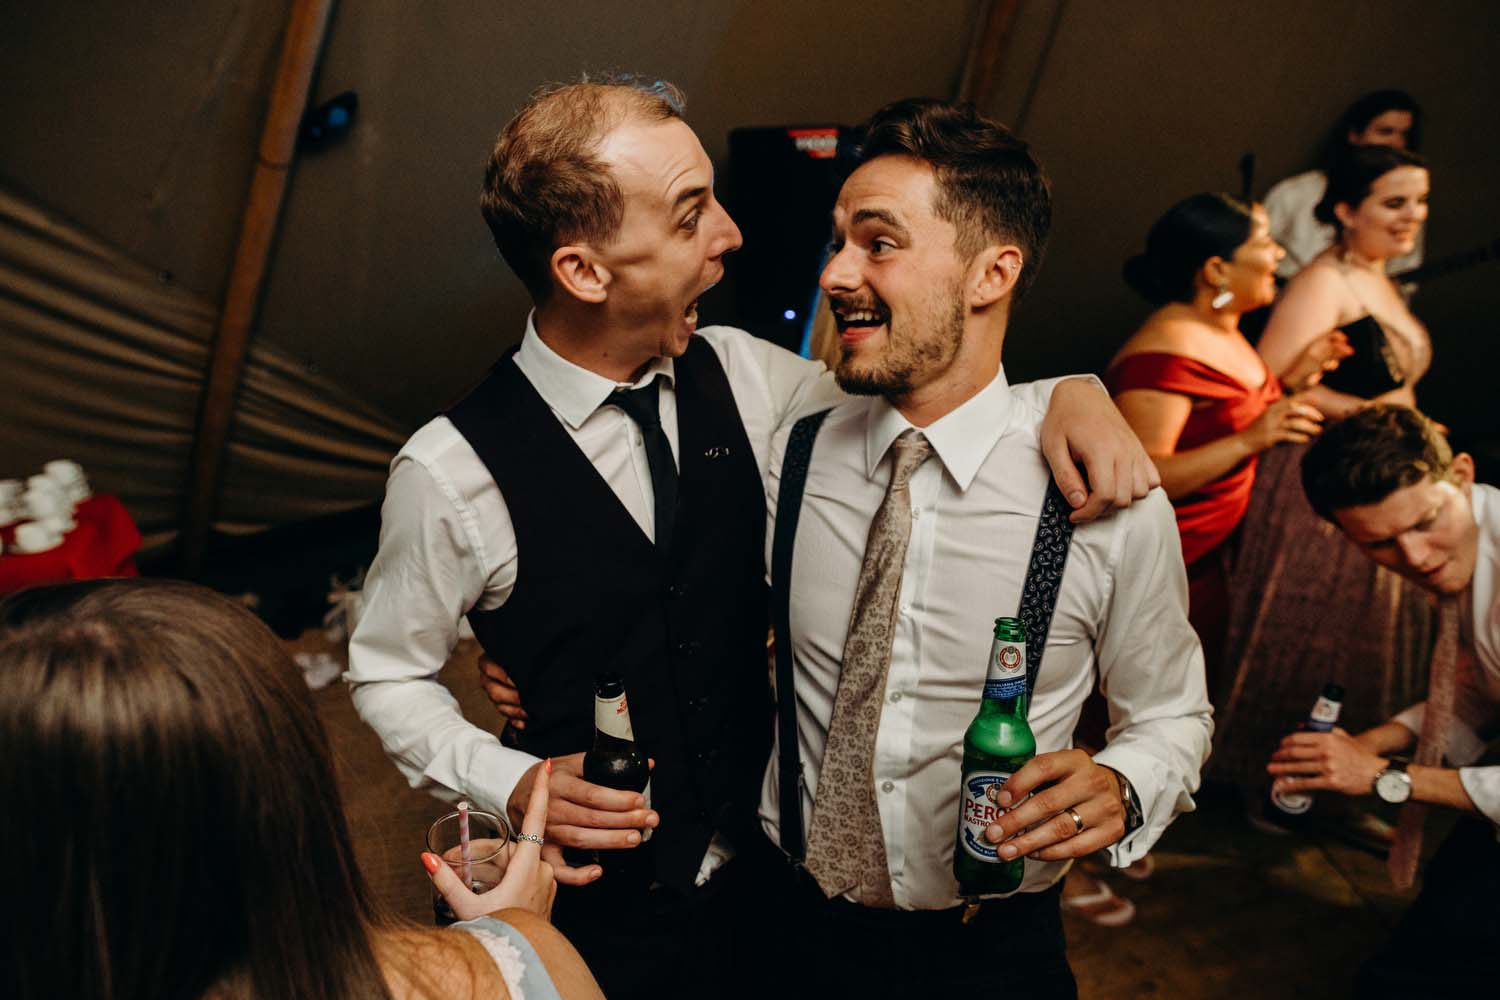 groom and friend hugging at wedding